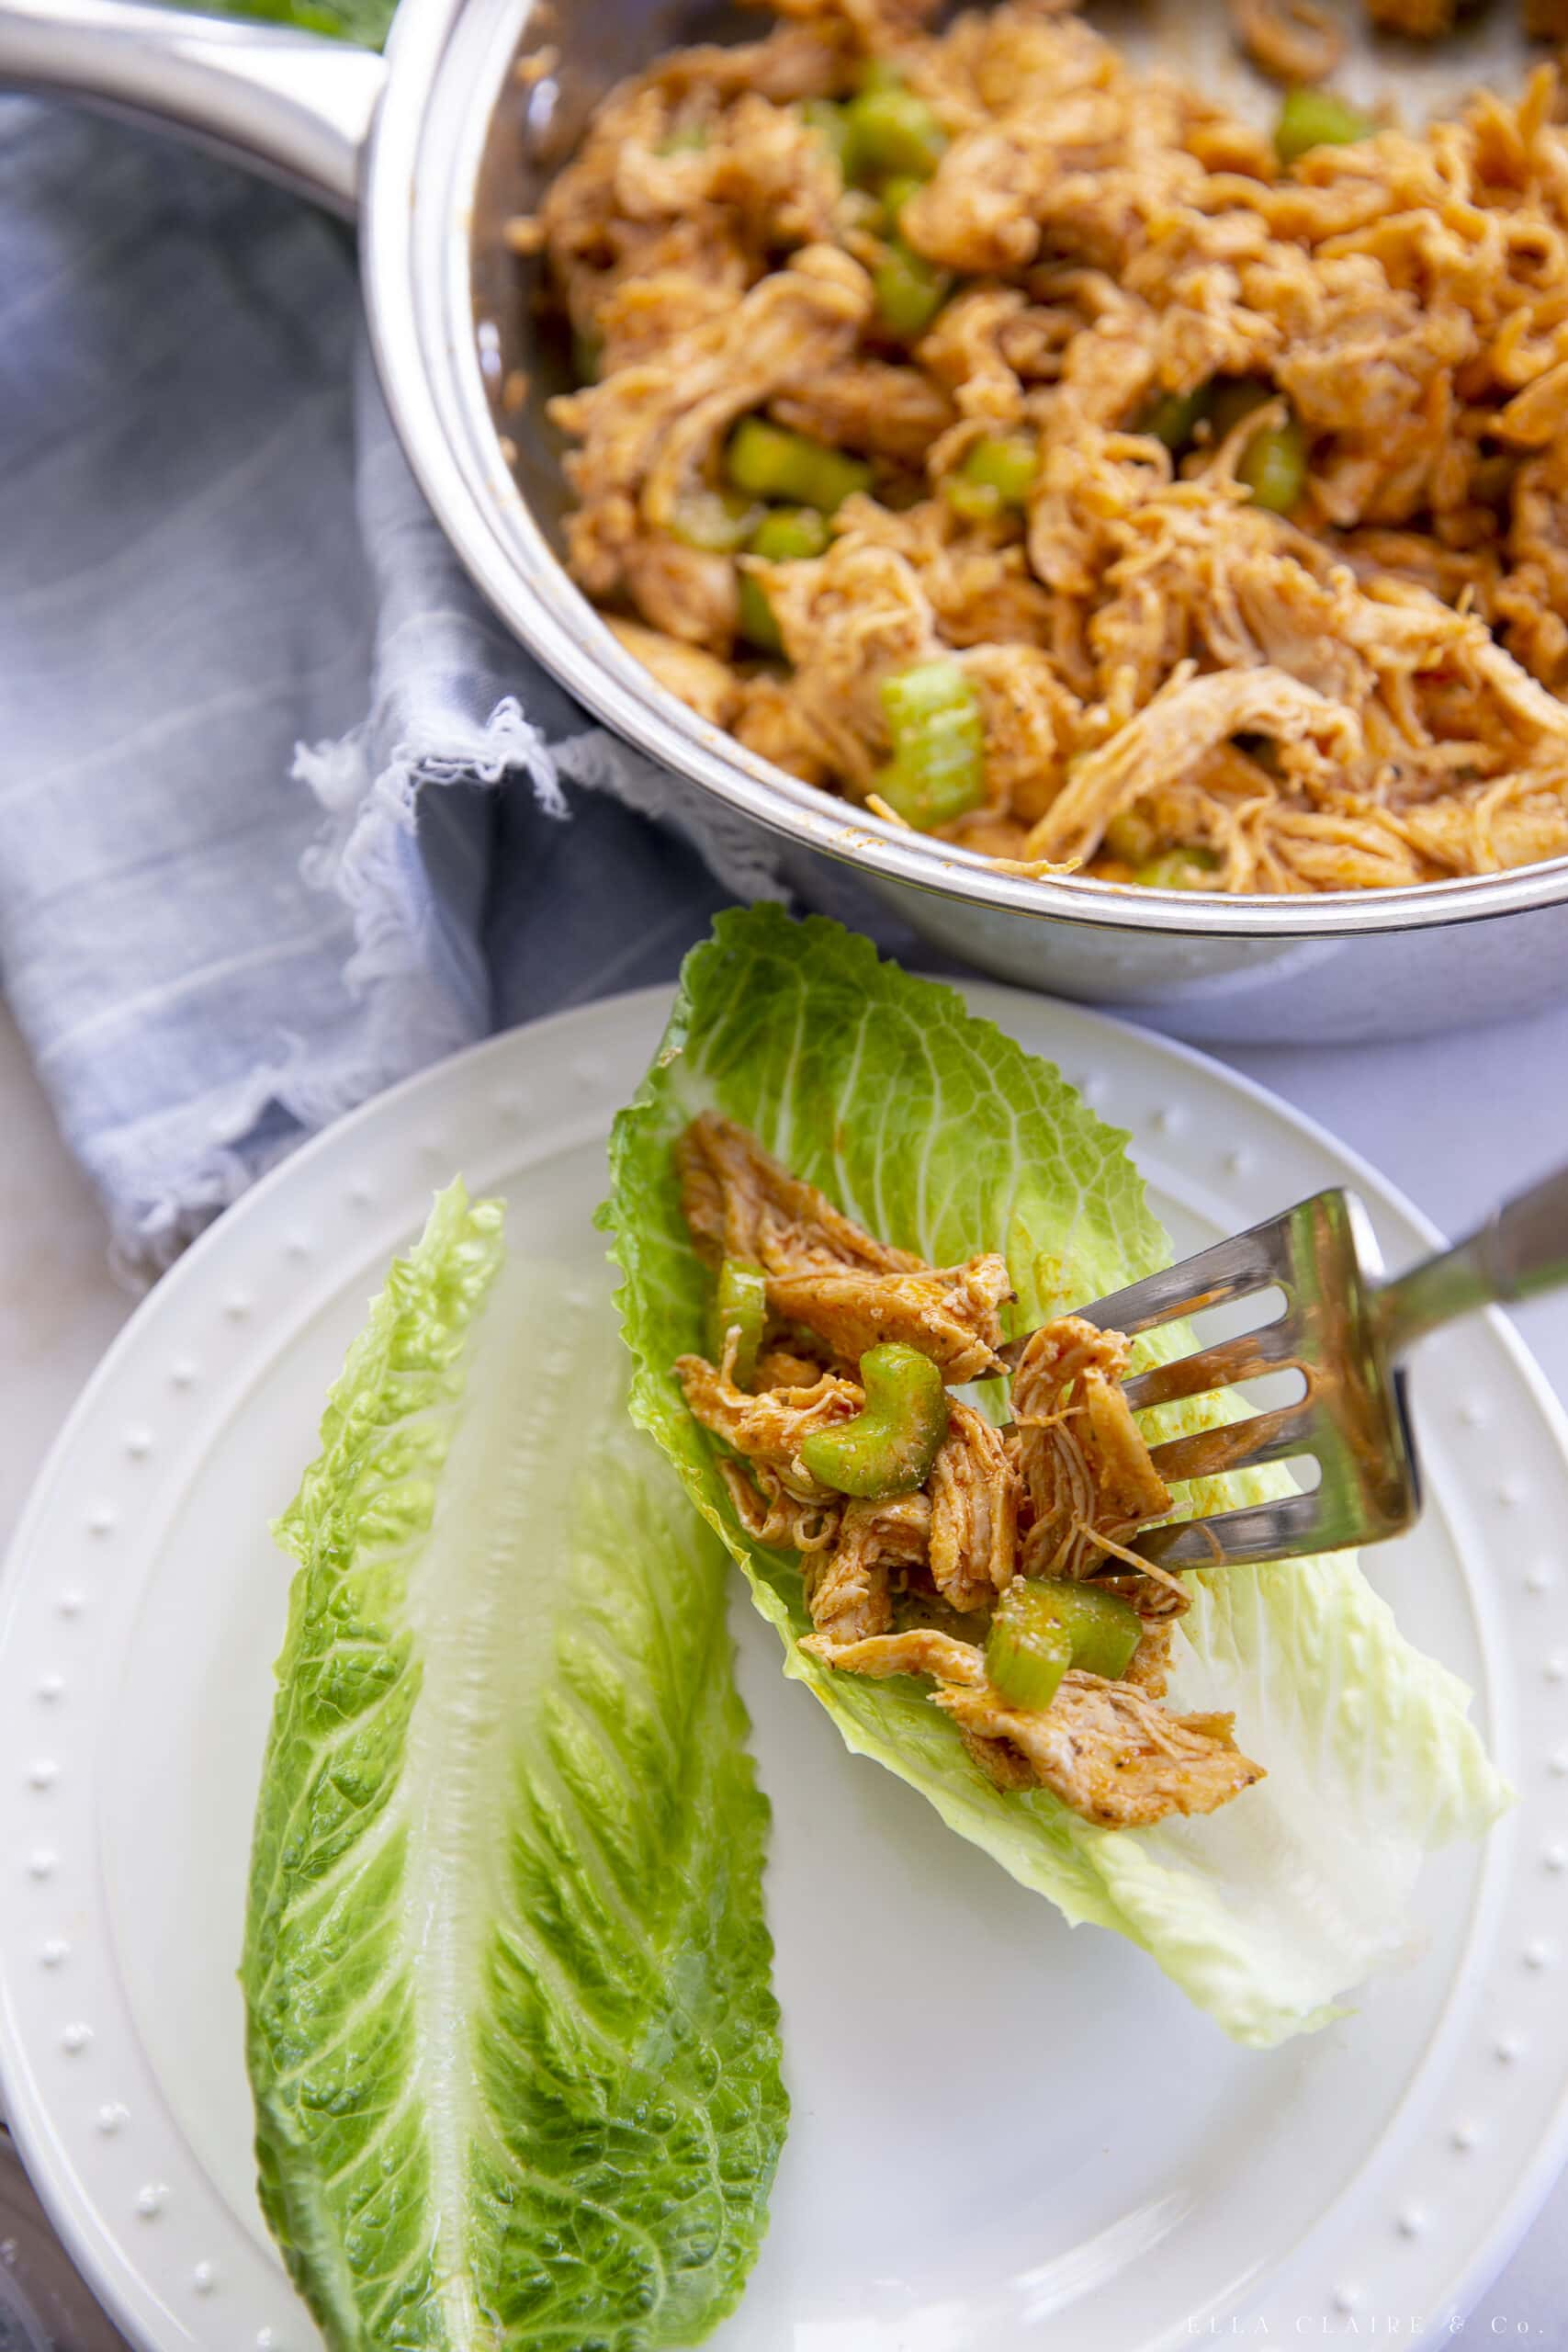 putting filling for buffalo chicken lettuce wraps into the lettuce slhells